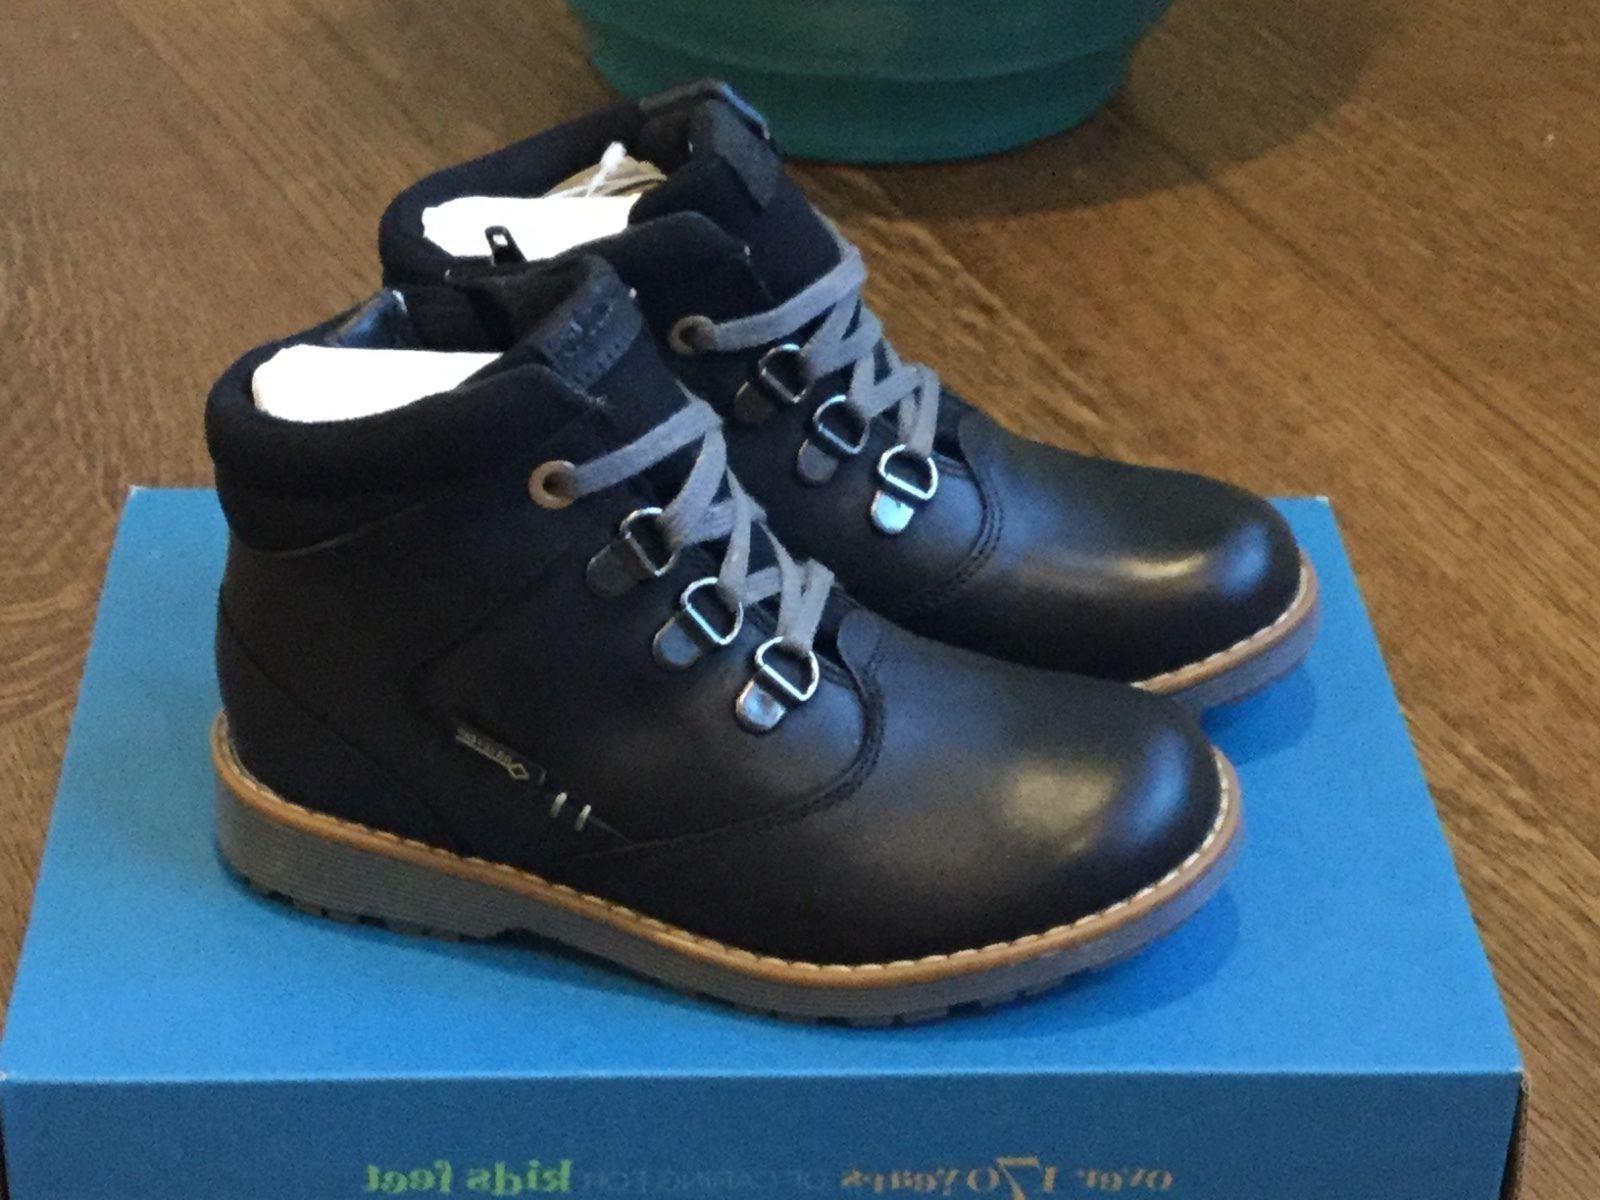 nwt gore tex boots leather black